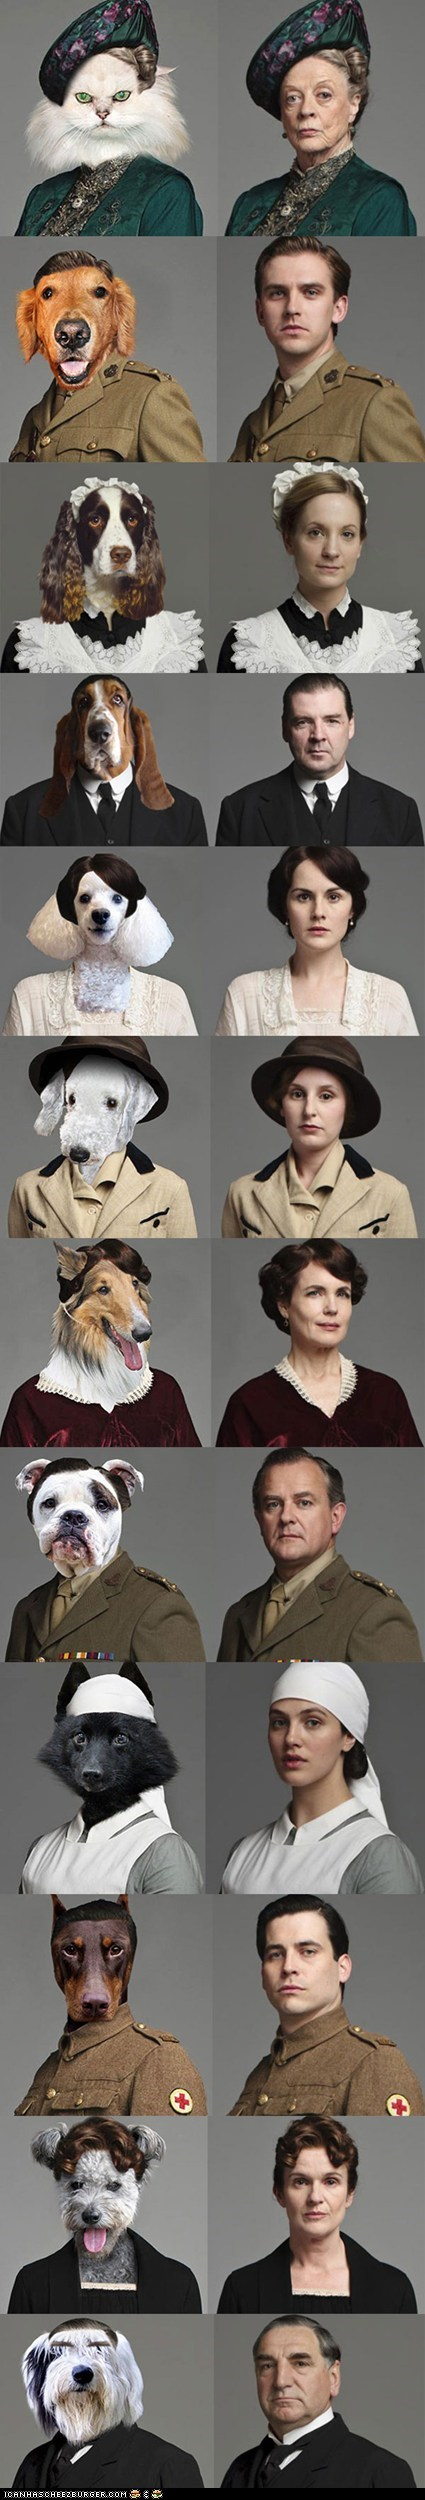 "The Cast of ""Downton Abbey"" as Cats and Dogs"